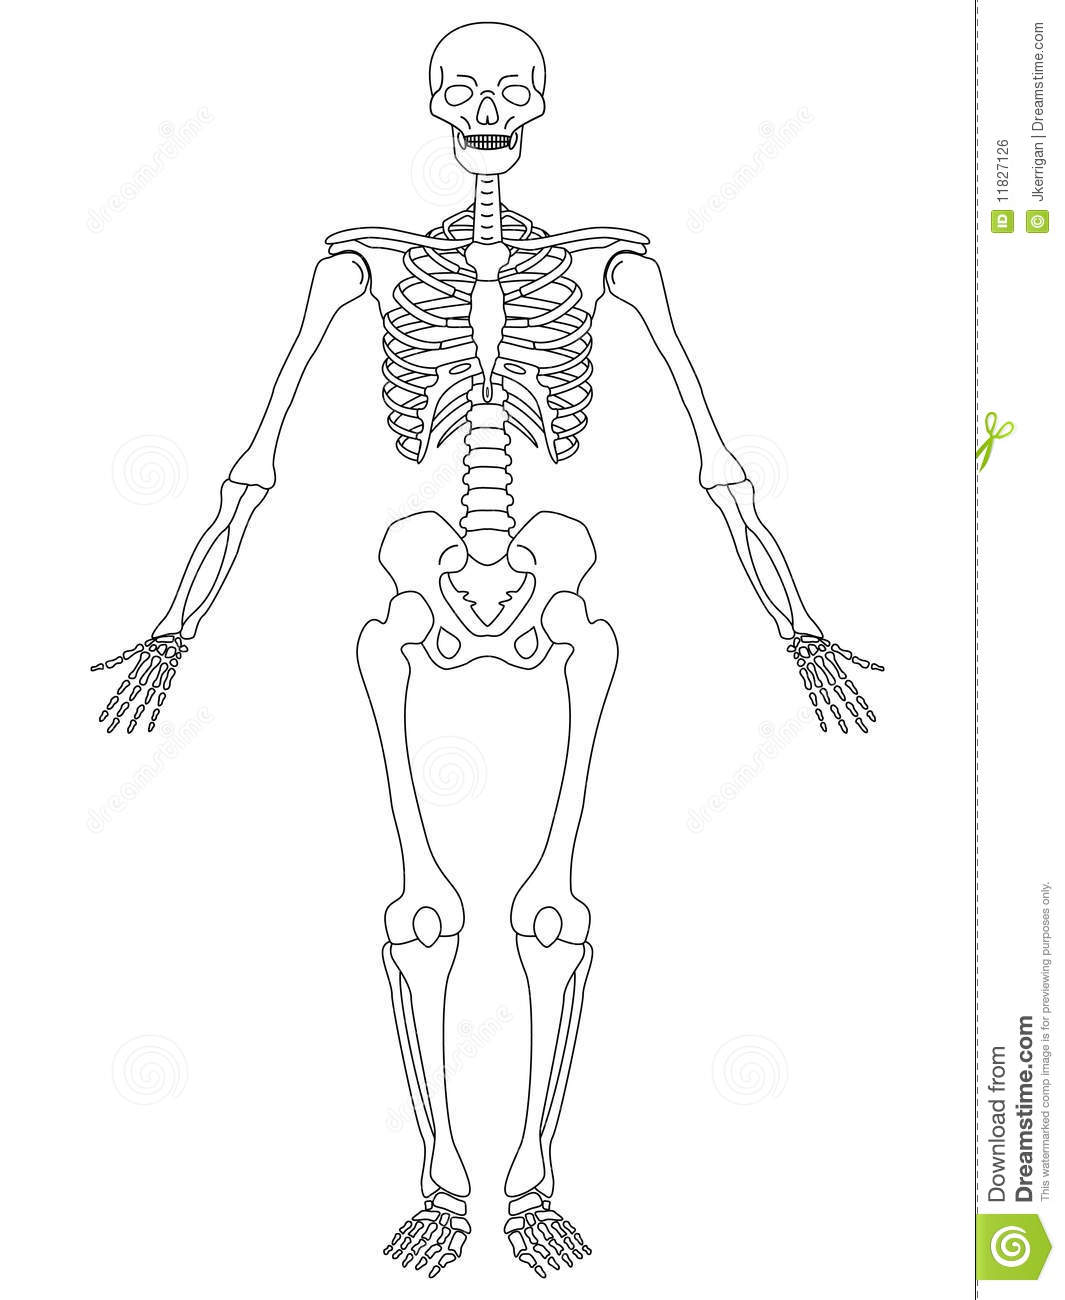 Human skeletal system diagram unlabeled - crazywidow.info